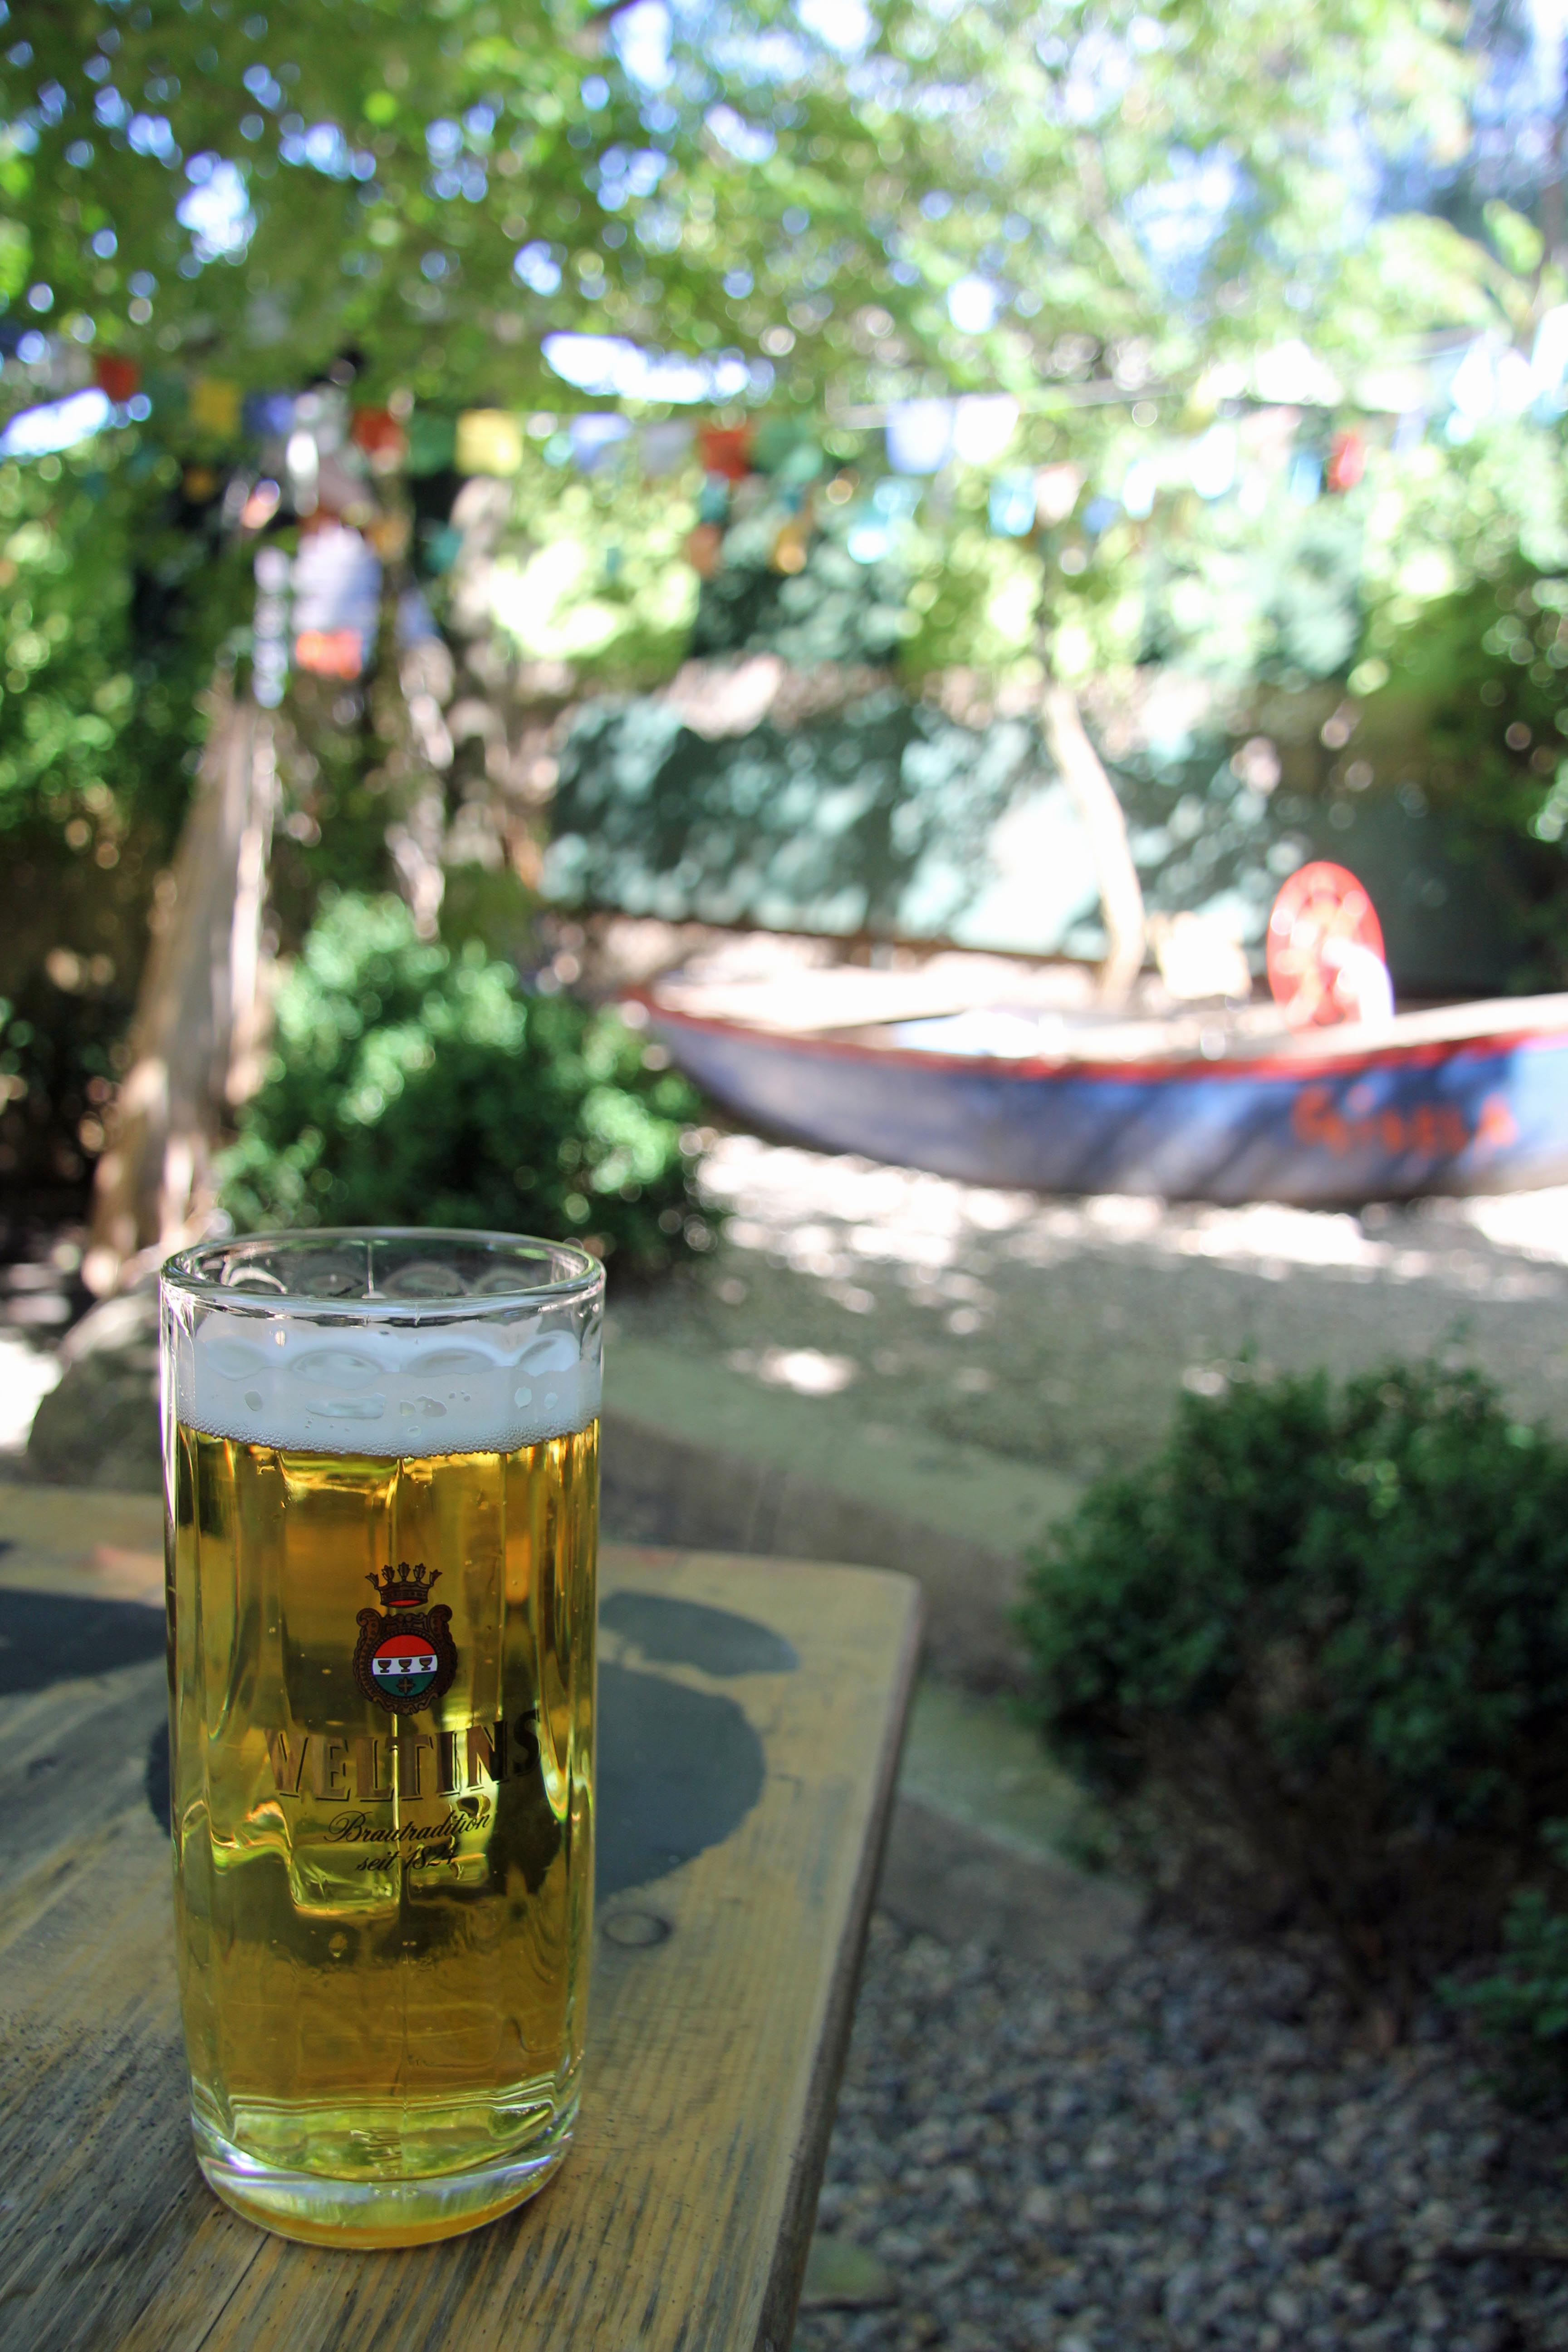 Veltins at Schleusenkrug and the pirate ship in the background in the Tiergarten in Berlin